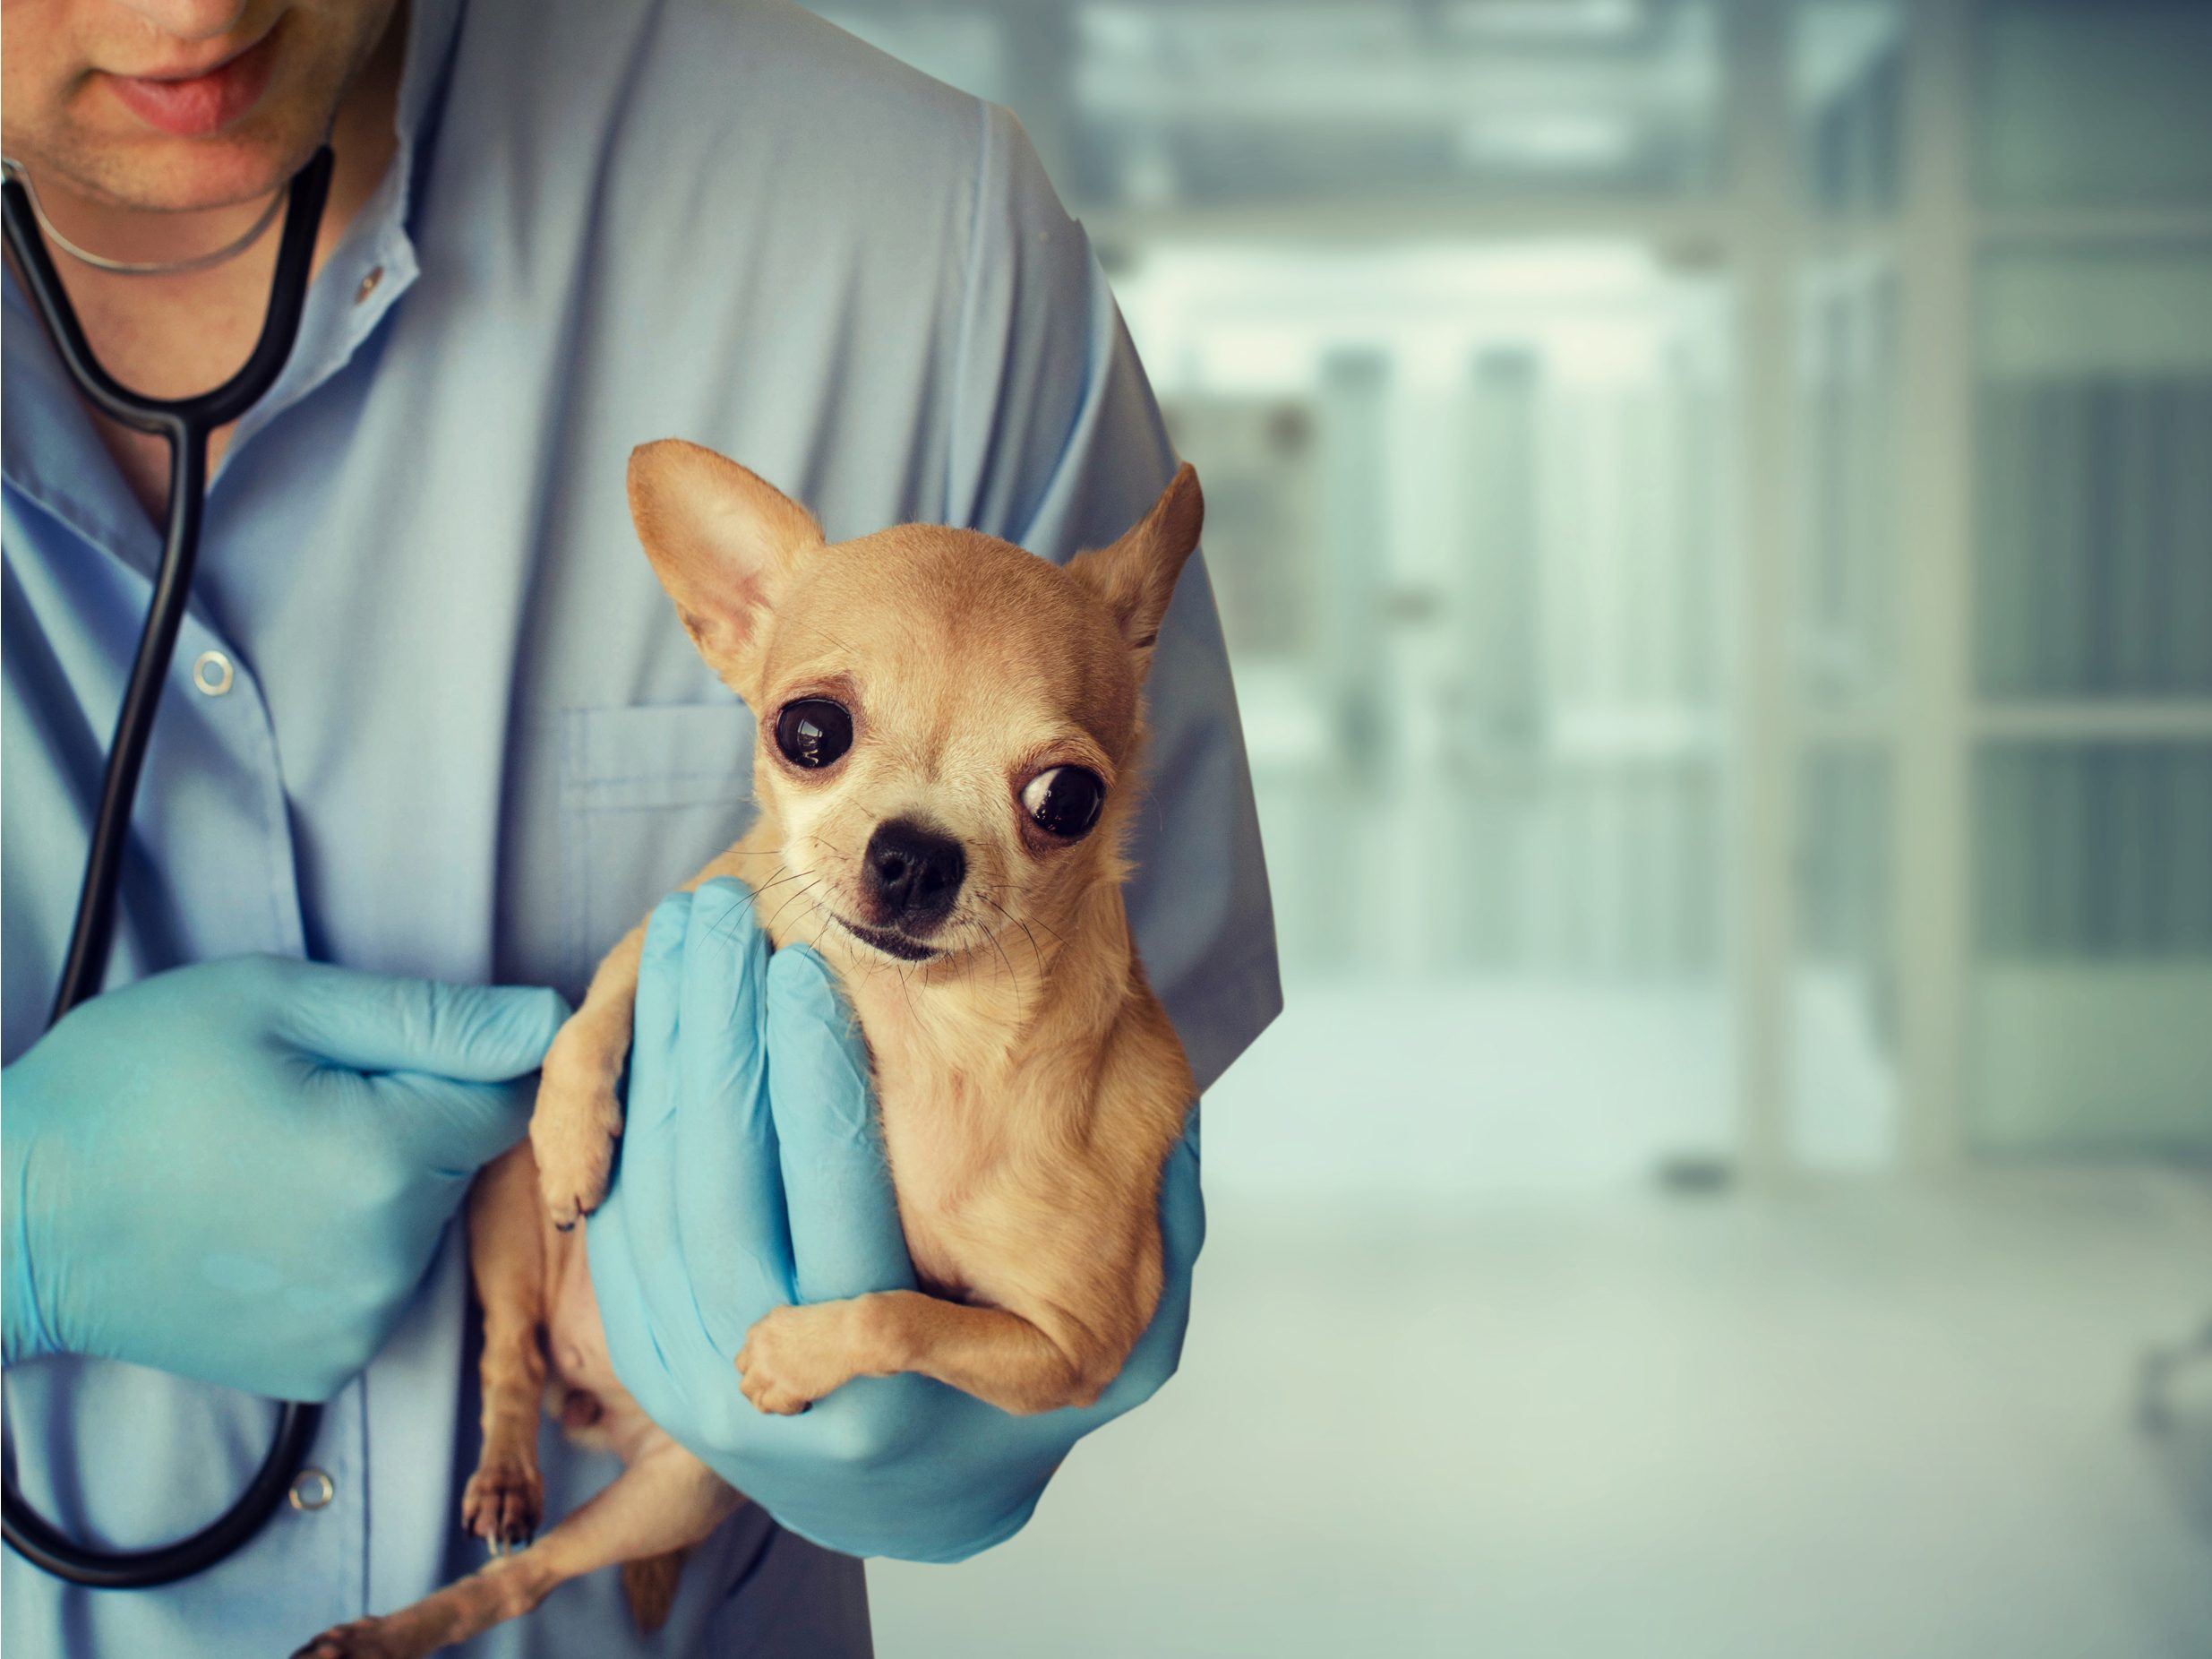 4. Find a good vet for your dog